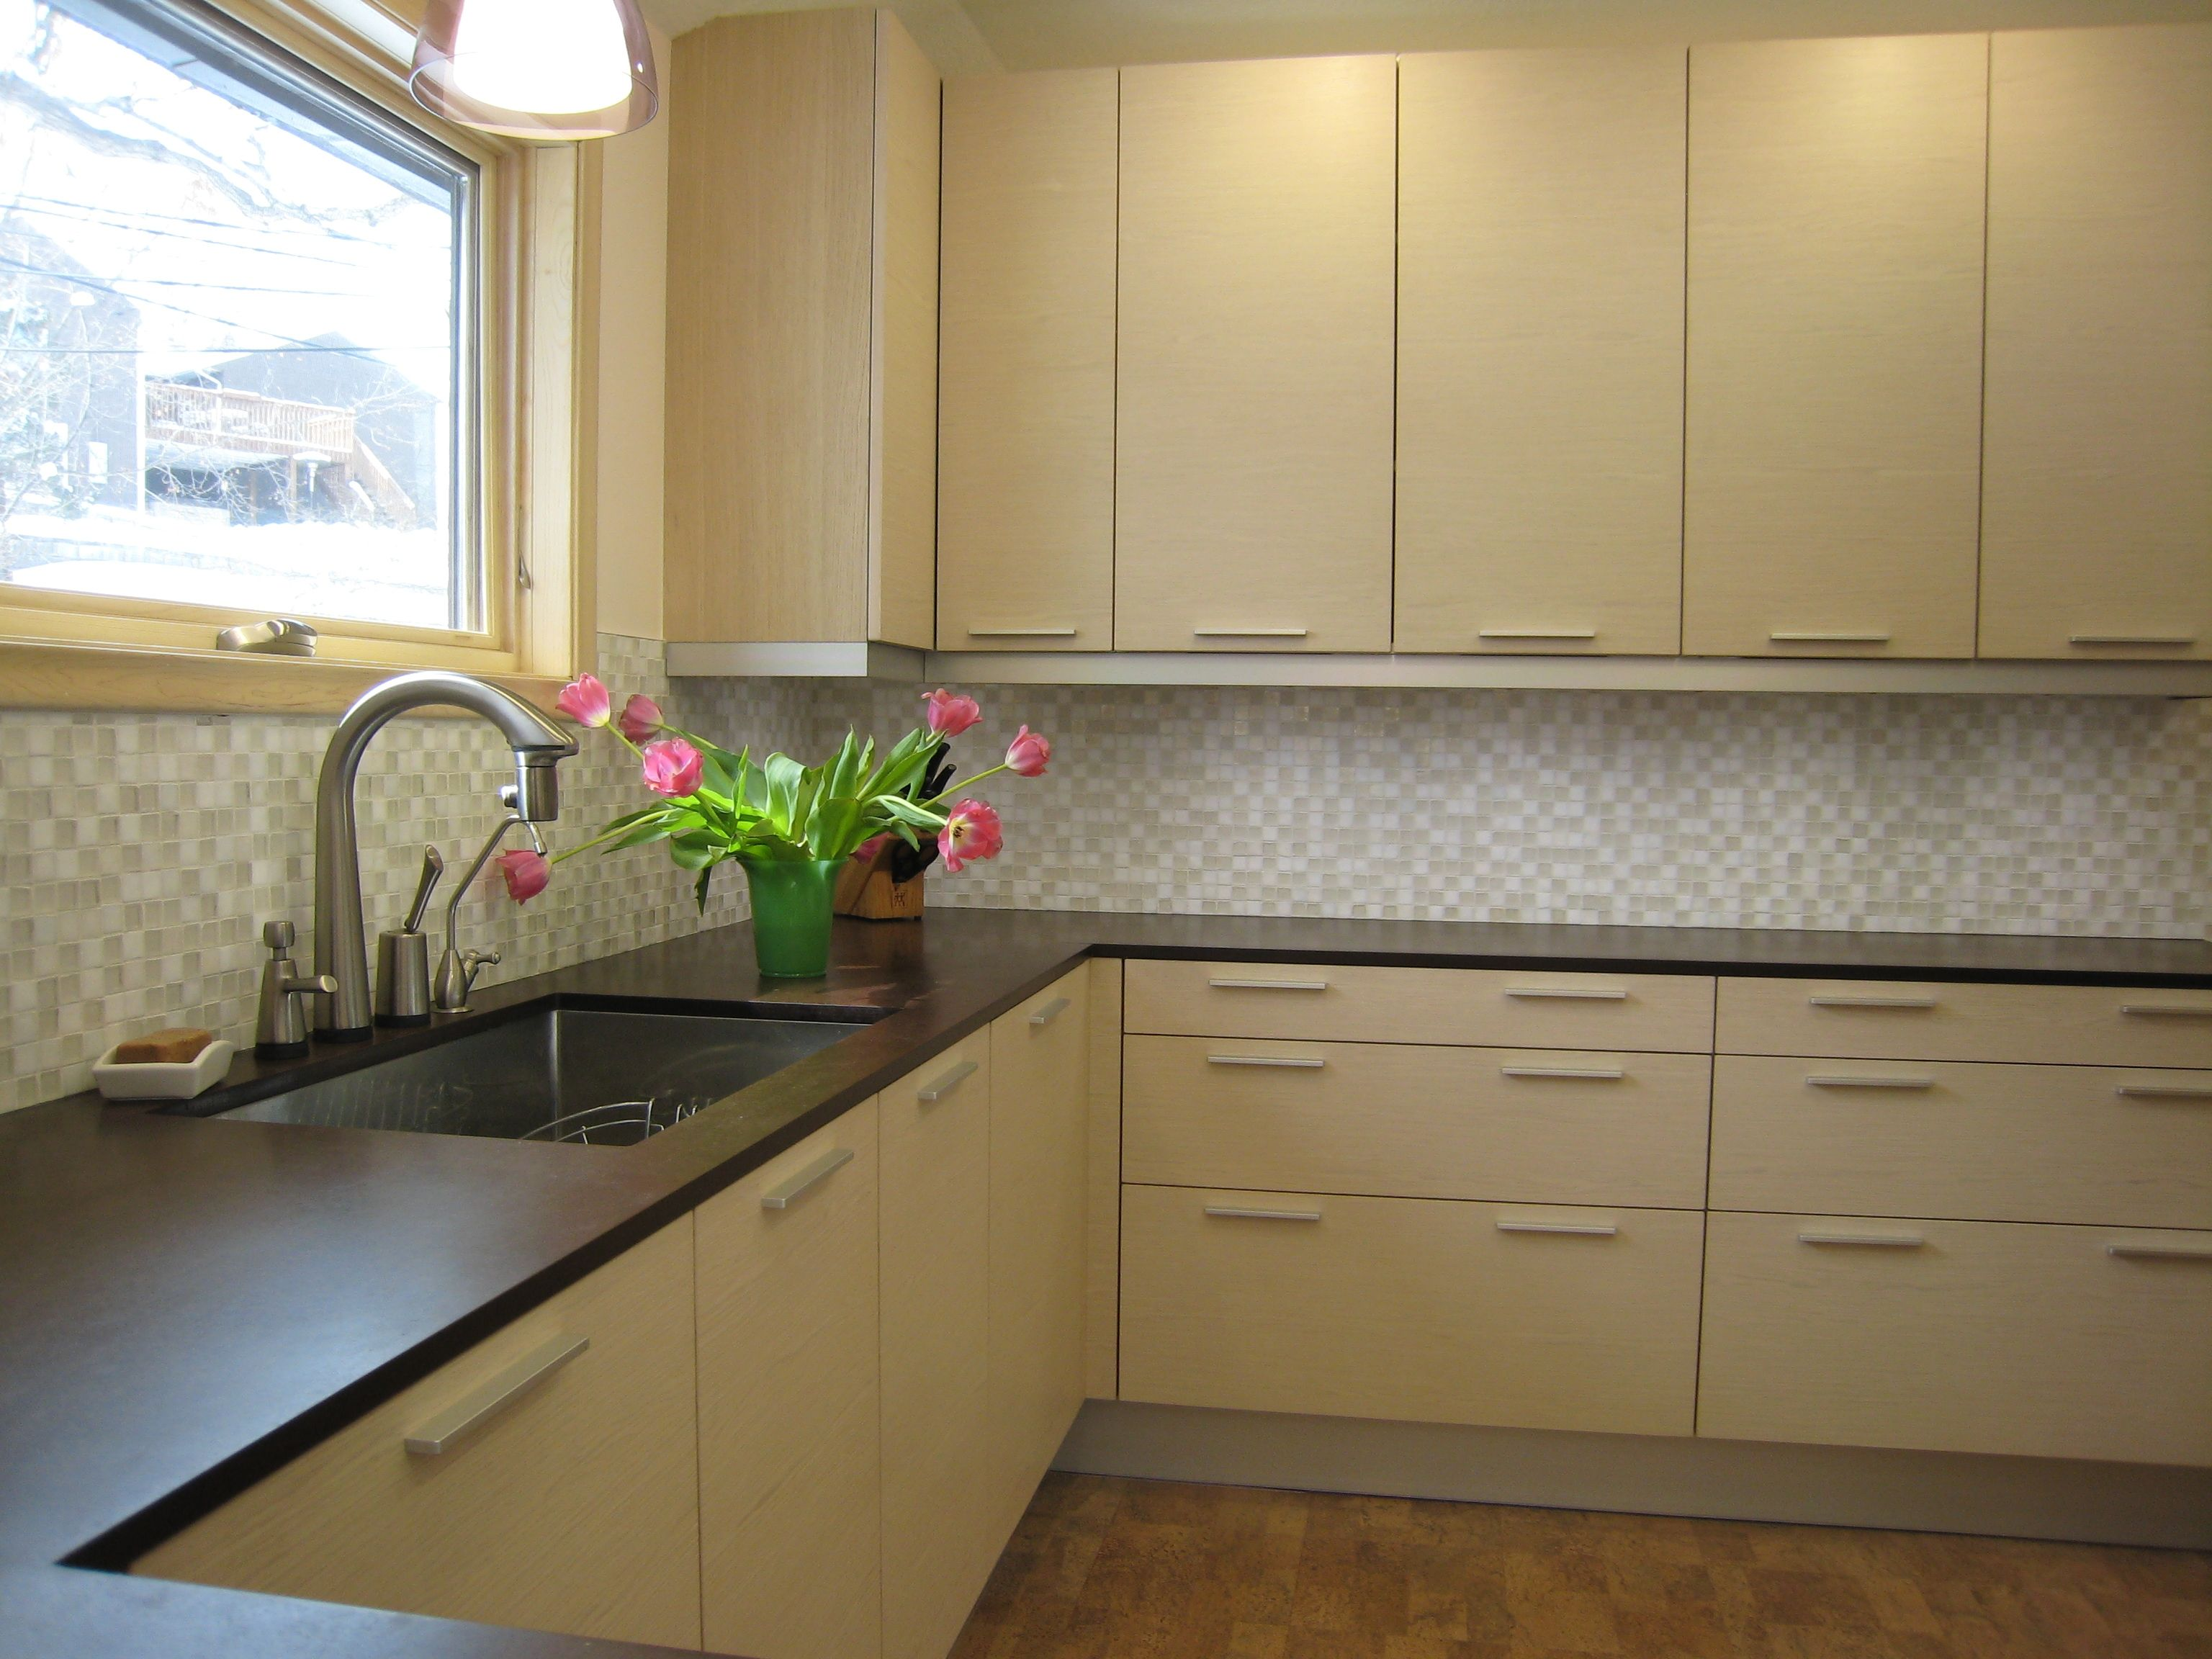 Paperstone Countertops And Oceanside Recycled Glass Backsplash